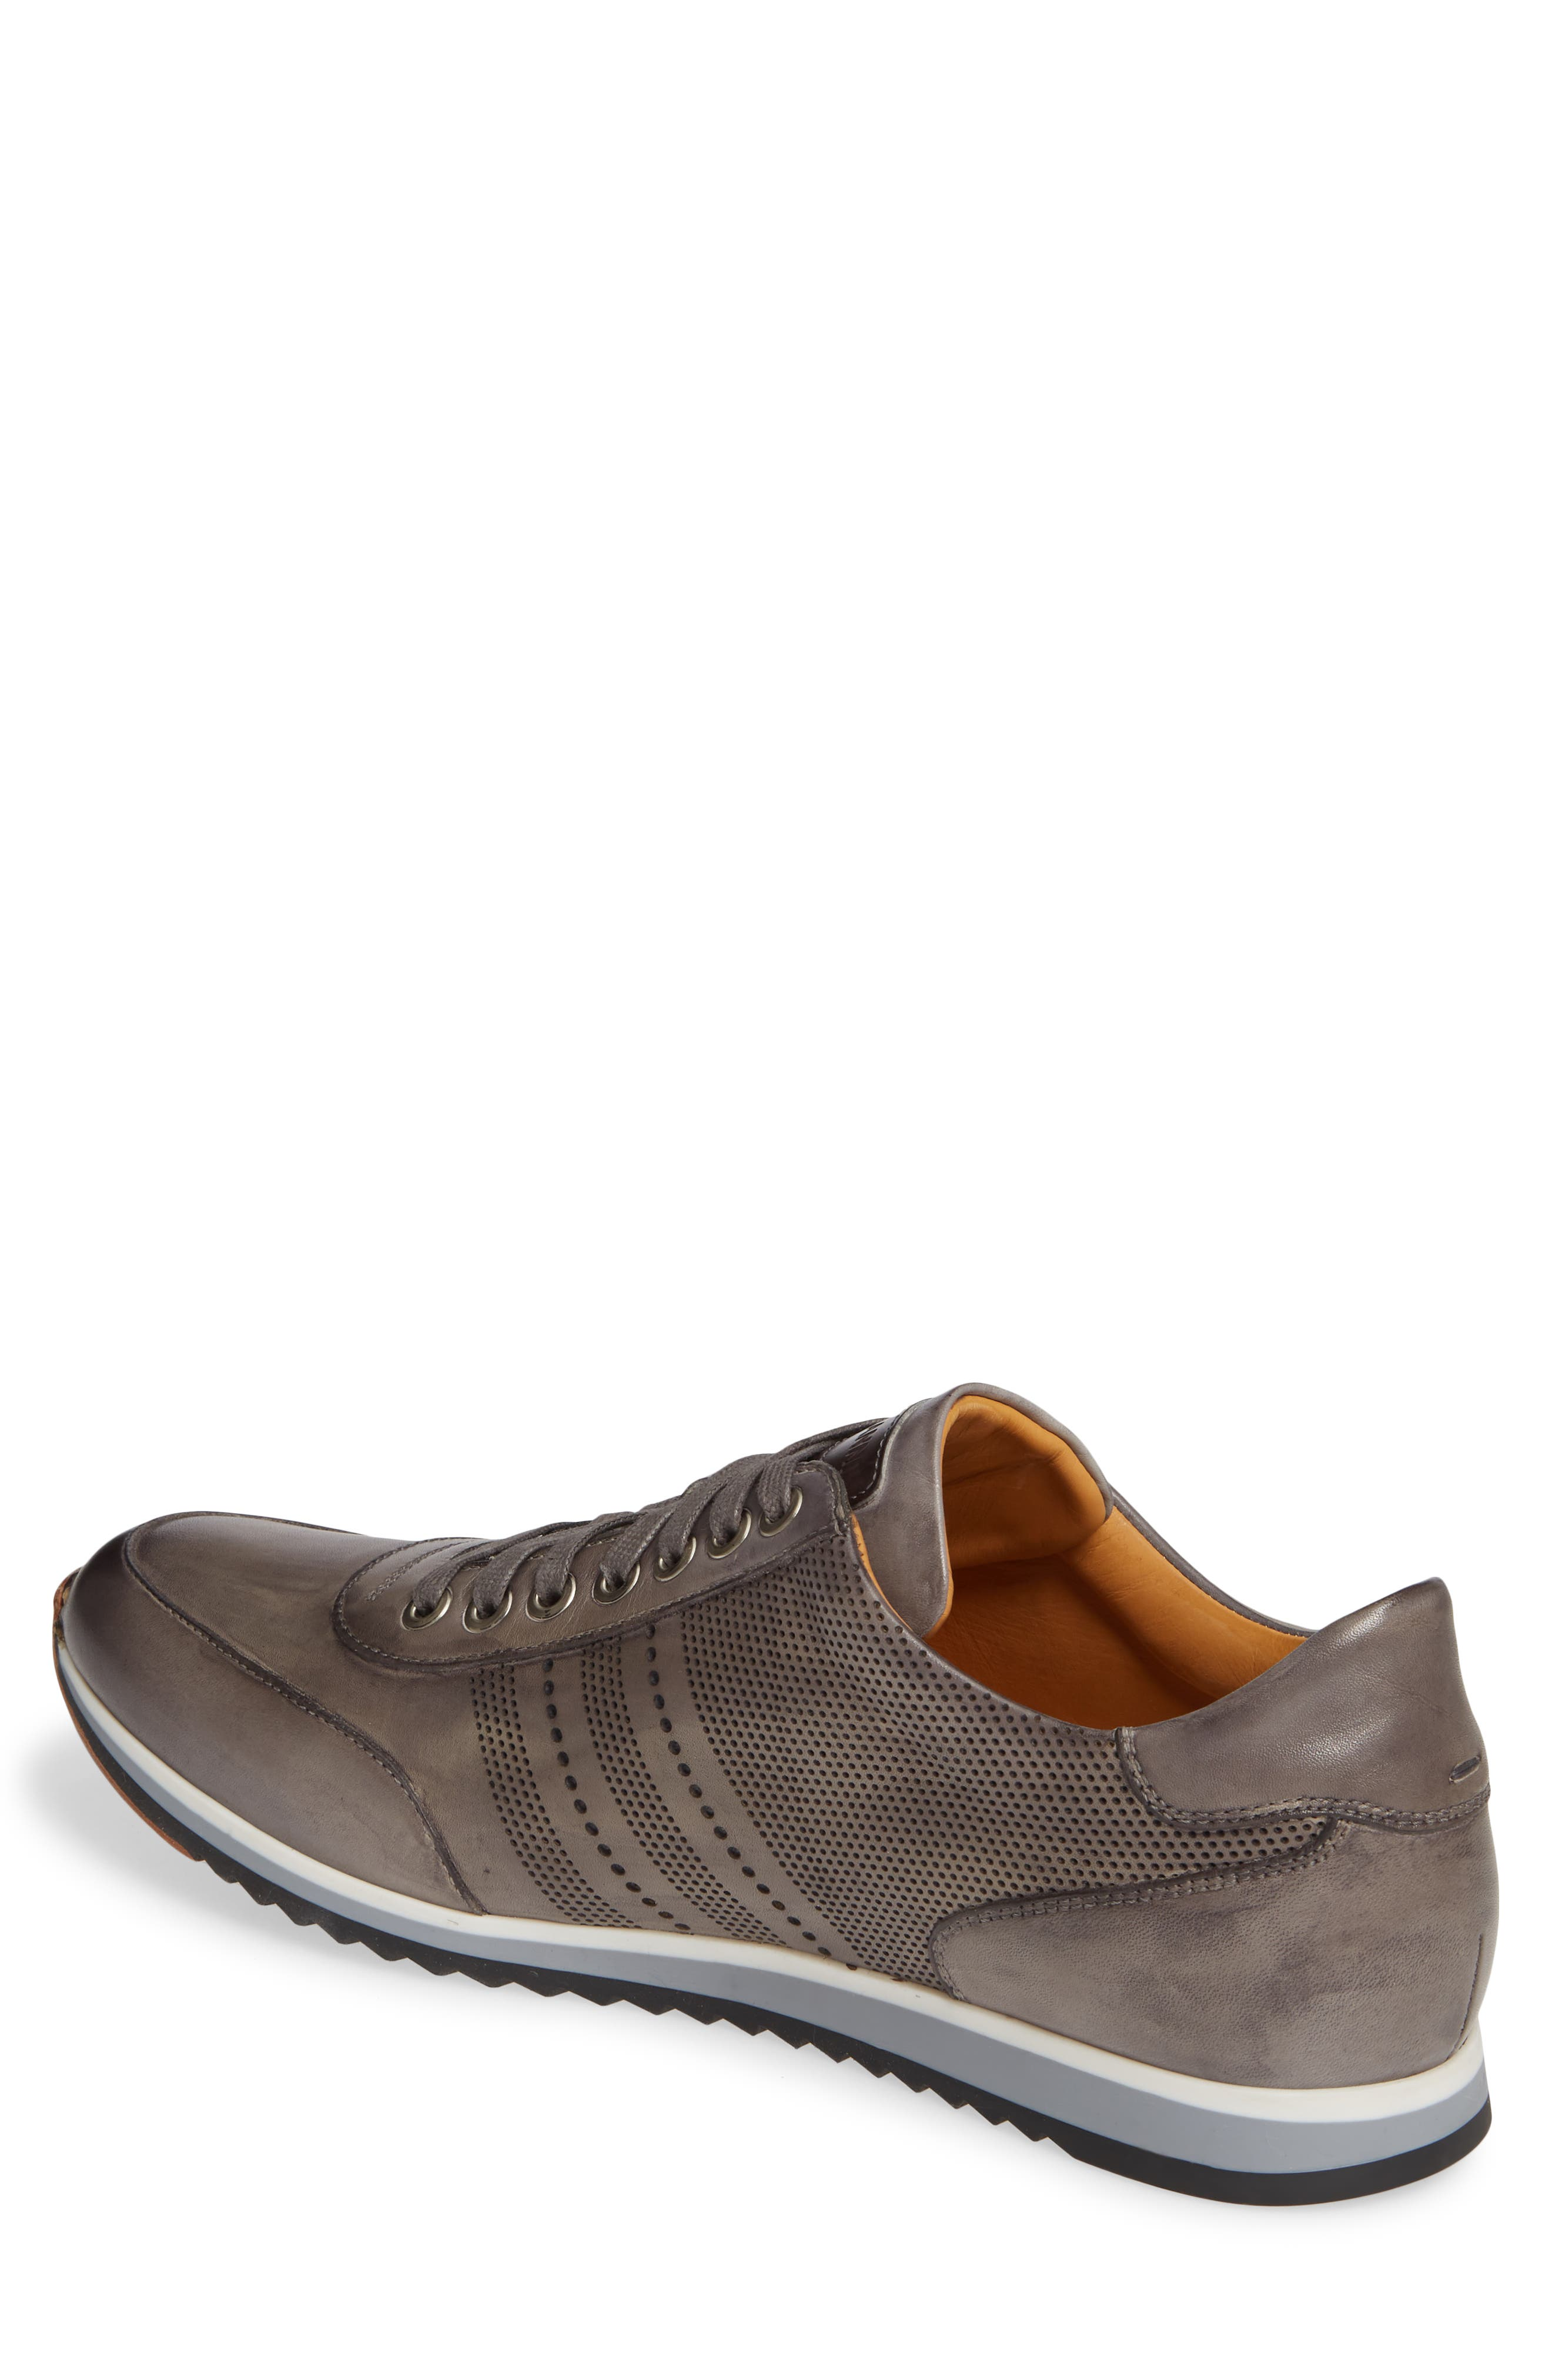 MAGNANNI, Merino Sneaker, Alternate thumbnail 2, color, GREY LEATHER